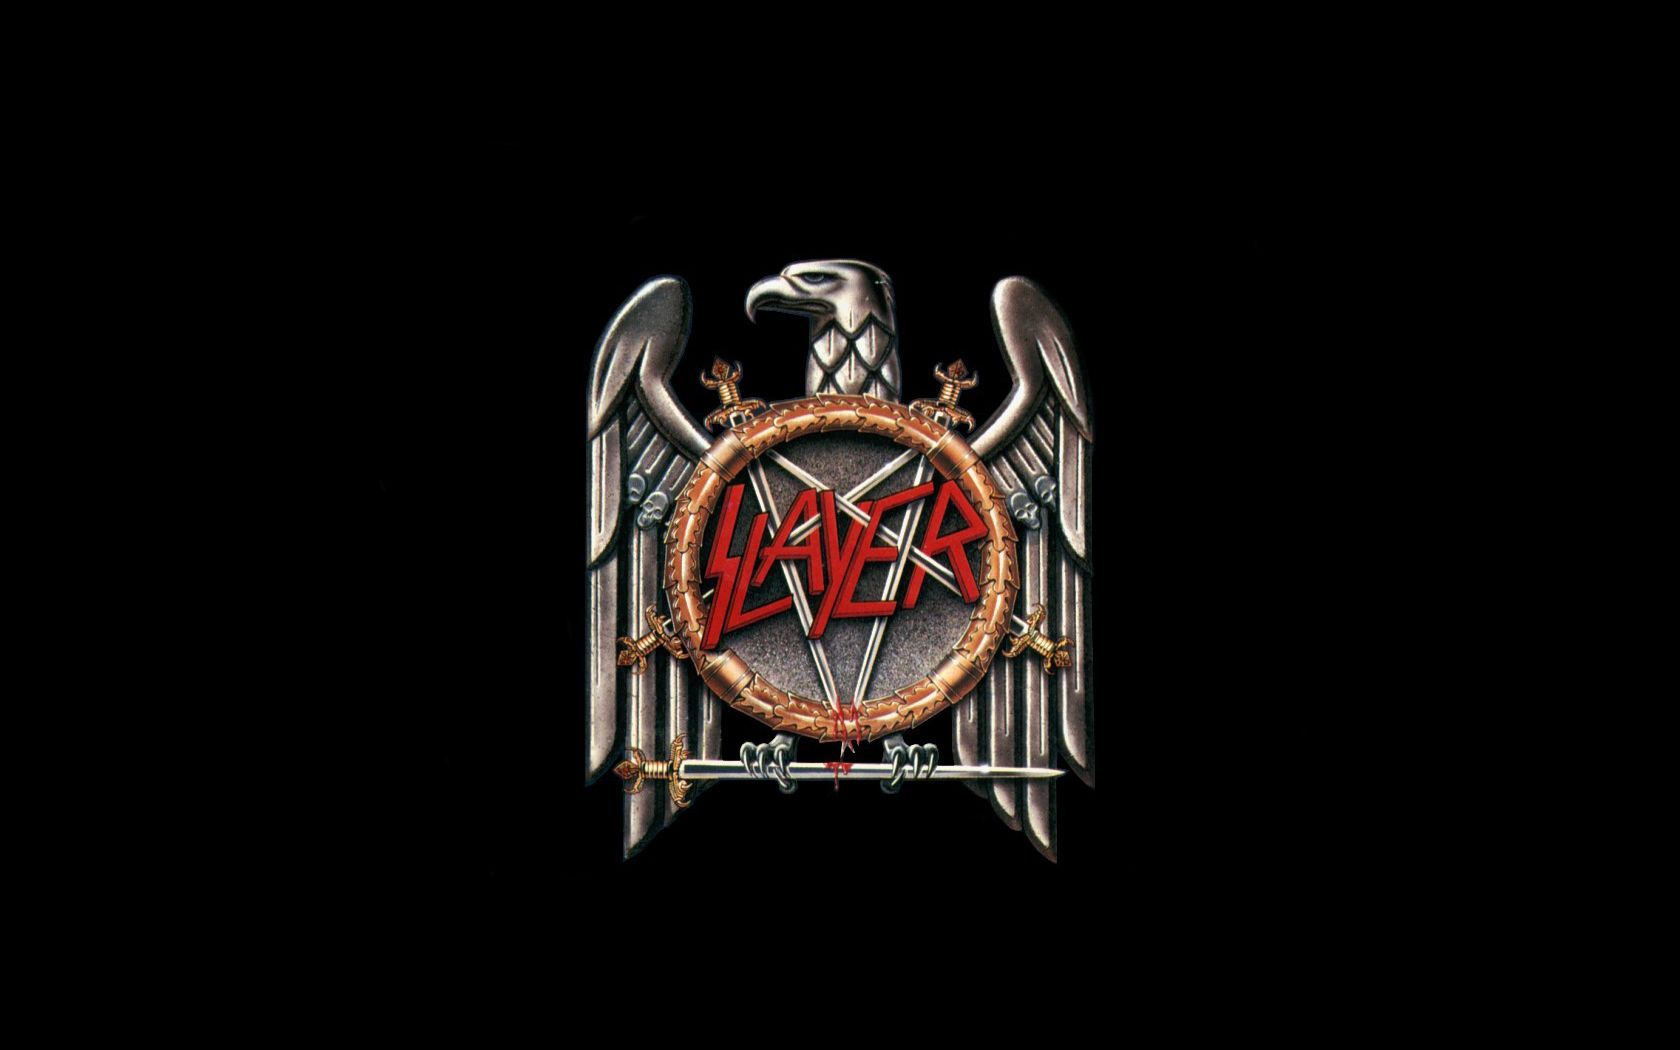 40 Slayer Hd Wallpapers Backgrounds Wallpaper Abyss Music